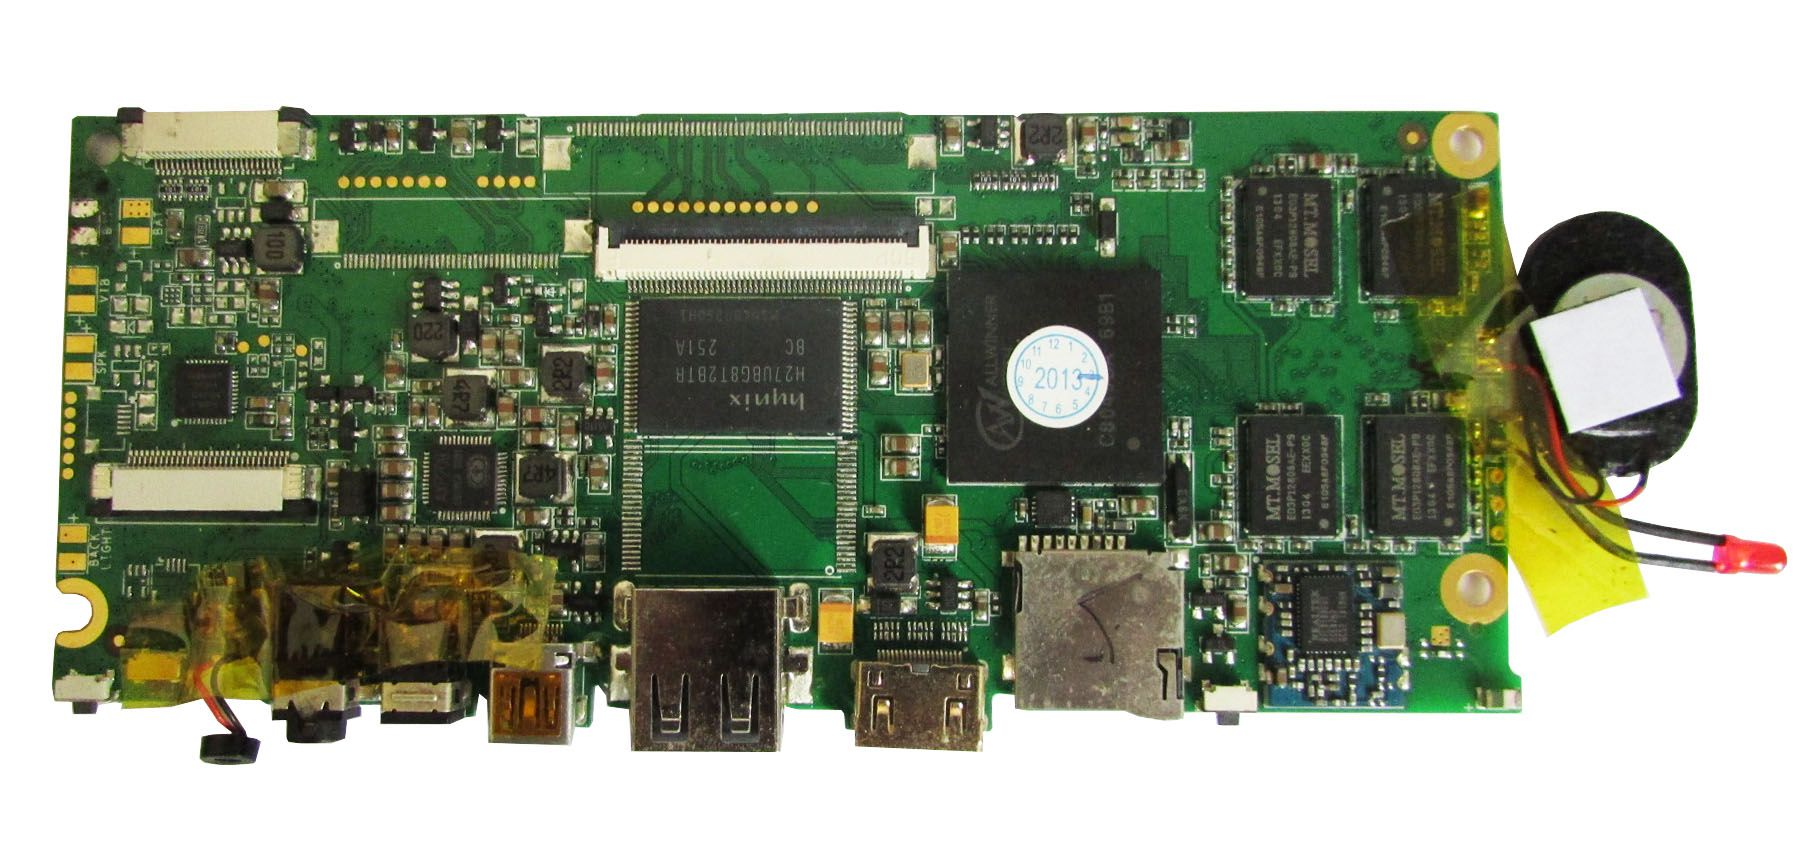 Placa Mãe Notebook Foston Fs-m797hd (semi novo)